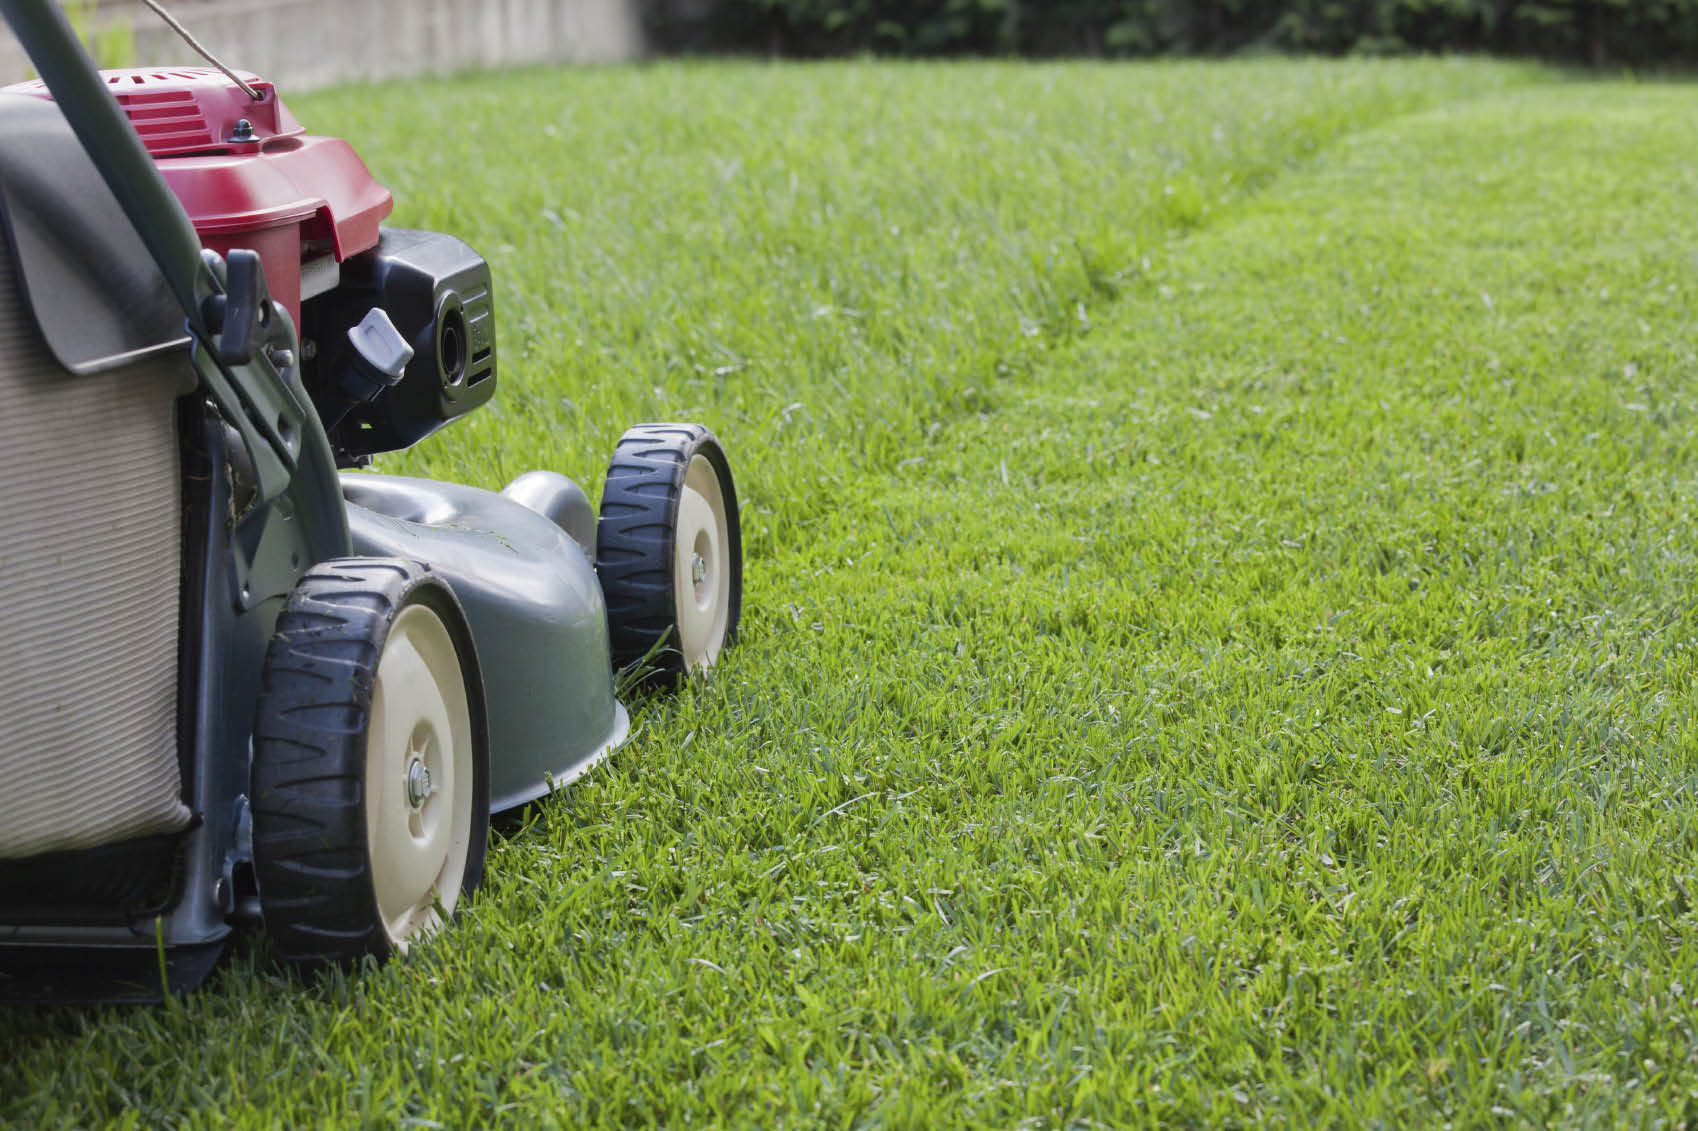 Vinny's Gardening Service - lawn mowing - mowing the lawn - Kent landscapers - landscapers in Kent, WA